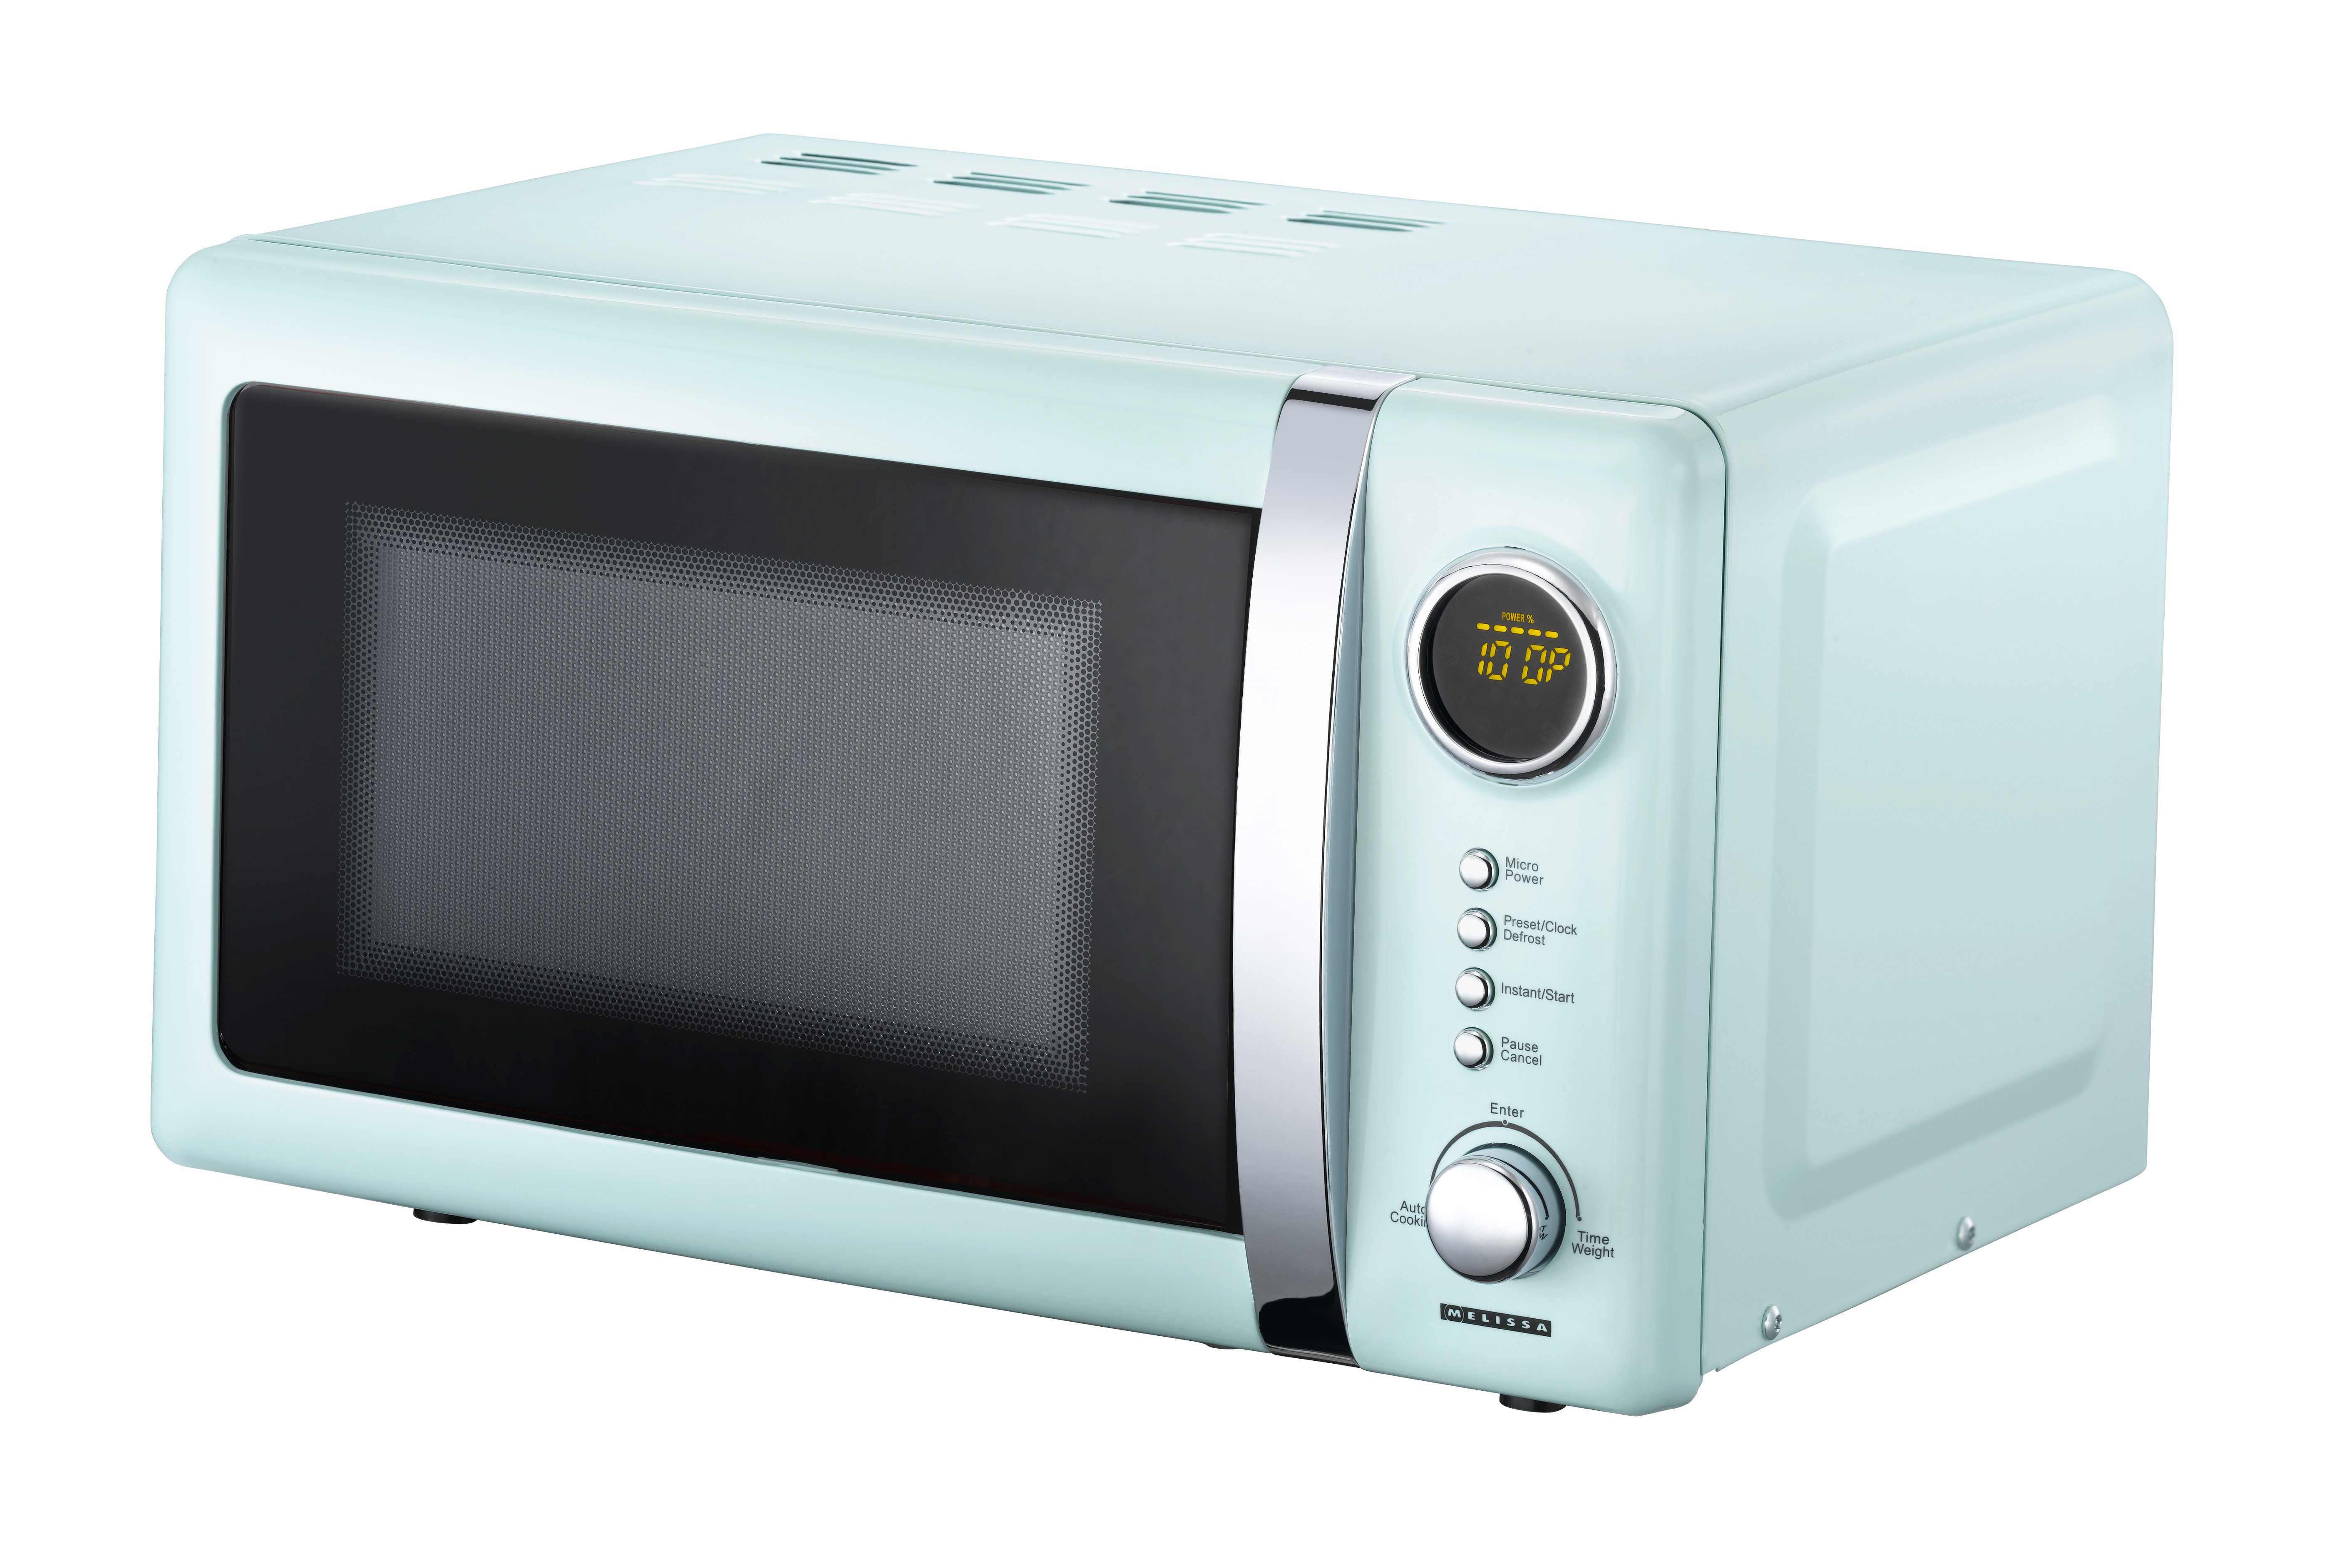 Microw Oven Electronic 20 L Baby Blue 700w Adexi